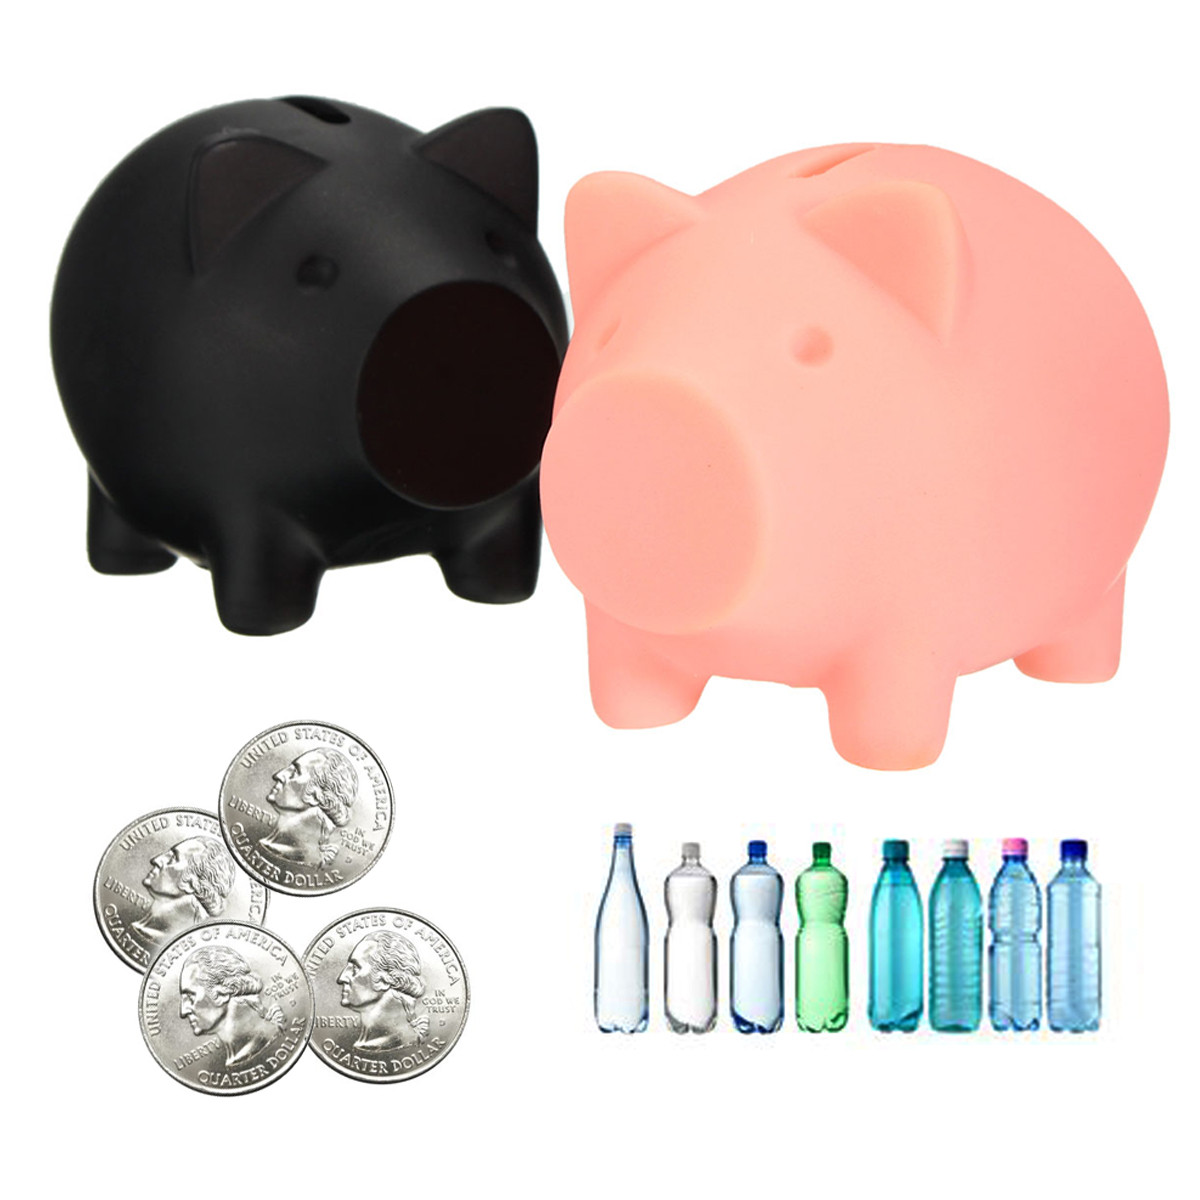 Plastic Piggy Banks DIY Bottle Caps Money Coins Collection Gift For Kids Toy